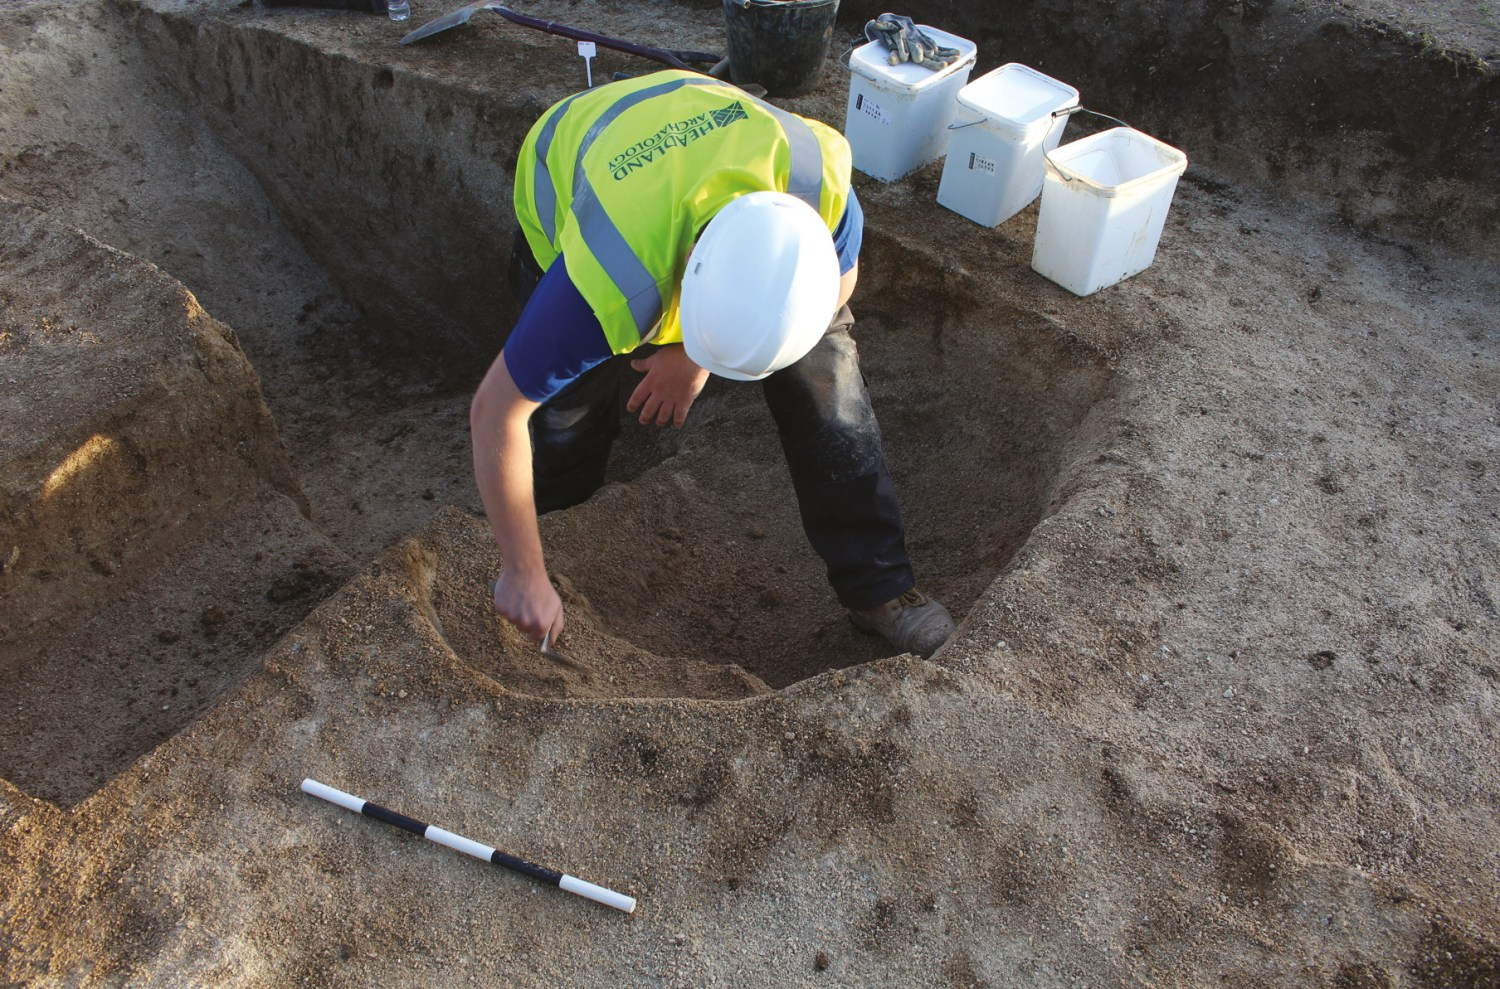 LEFT Headland Archaeology's investigations revealed features spanning the Bronze Age to the post-medieval period. One of the most significant finds was this grave cut, shown under investigation, which contained a Beaker-period infant burial.